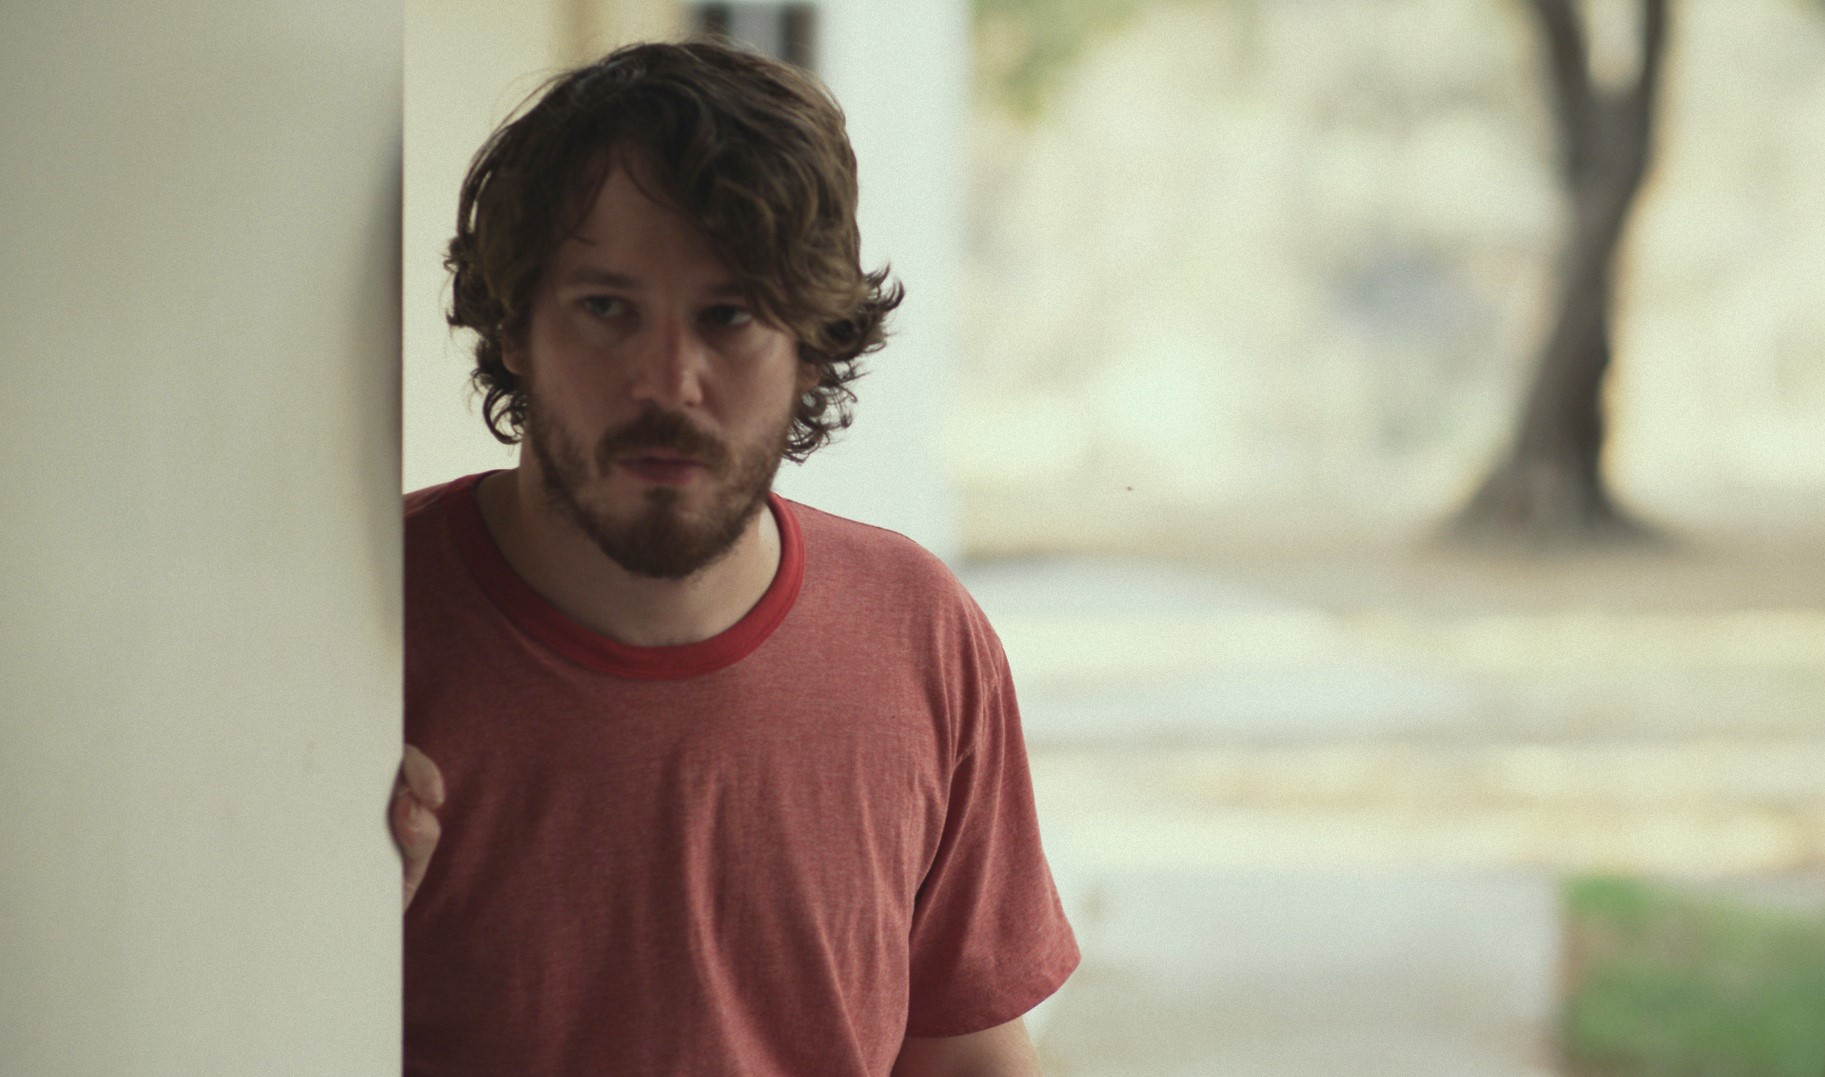 Short Term 12 - Film Review - Everywhere - by Richard Leathem